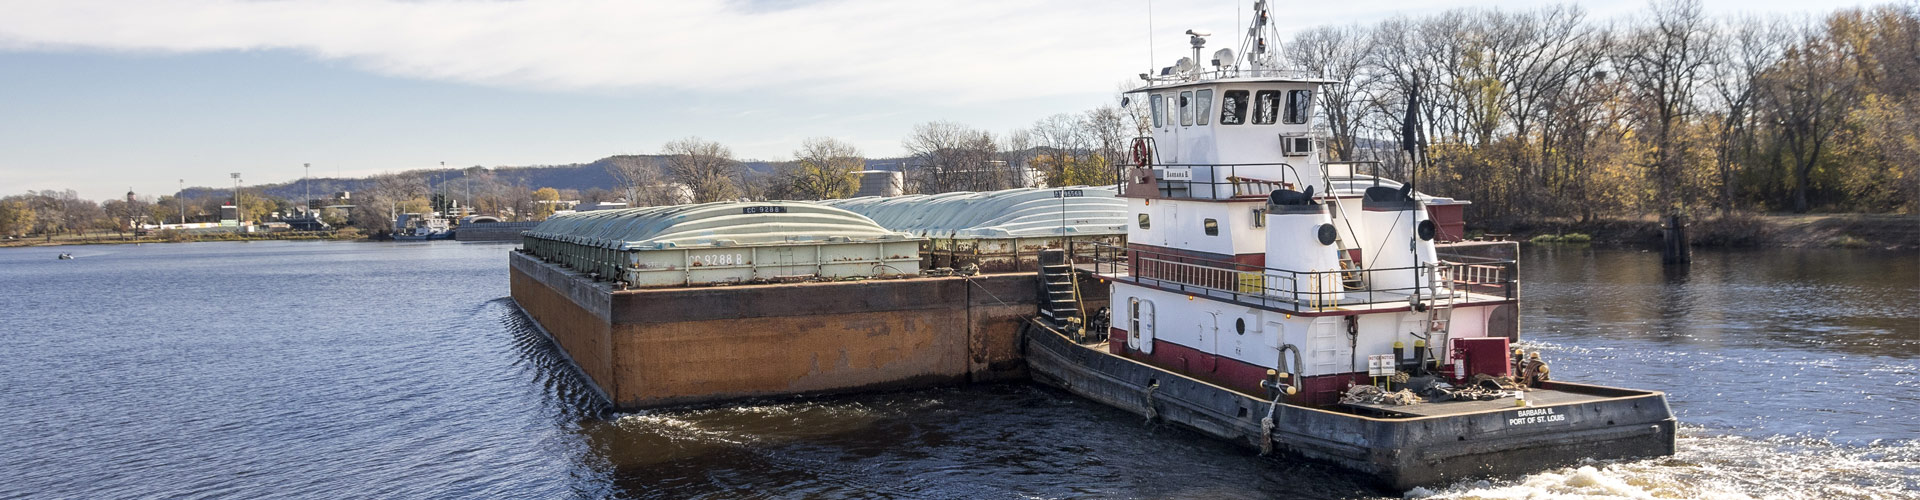 barge transportation, harbor management, inland waterway service, inland river service, brennan, Mississippi River barge transportation, barge services, harbor services, towboat services, mississippi river hopper barges, switching and fleeting